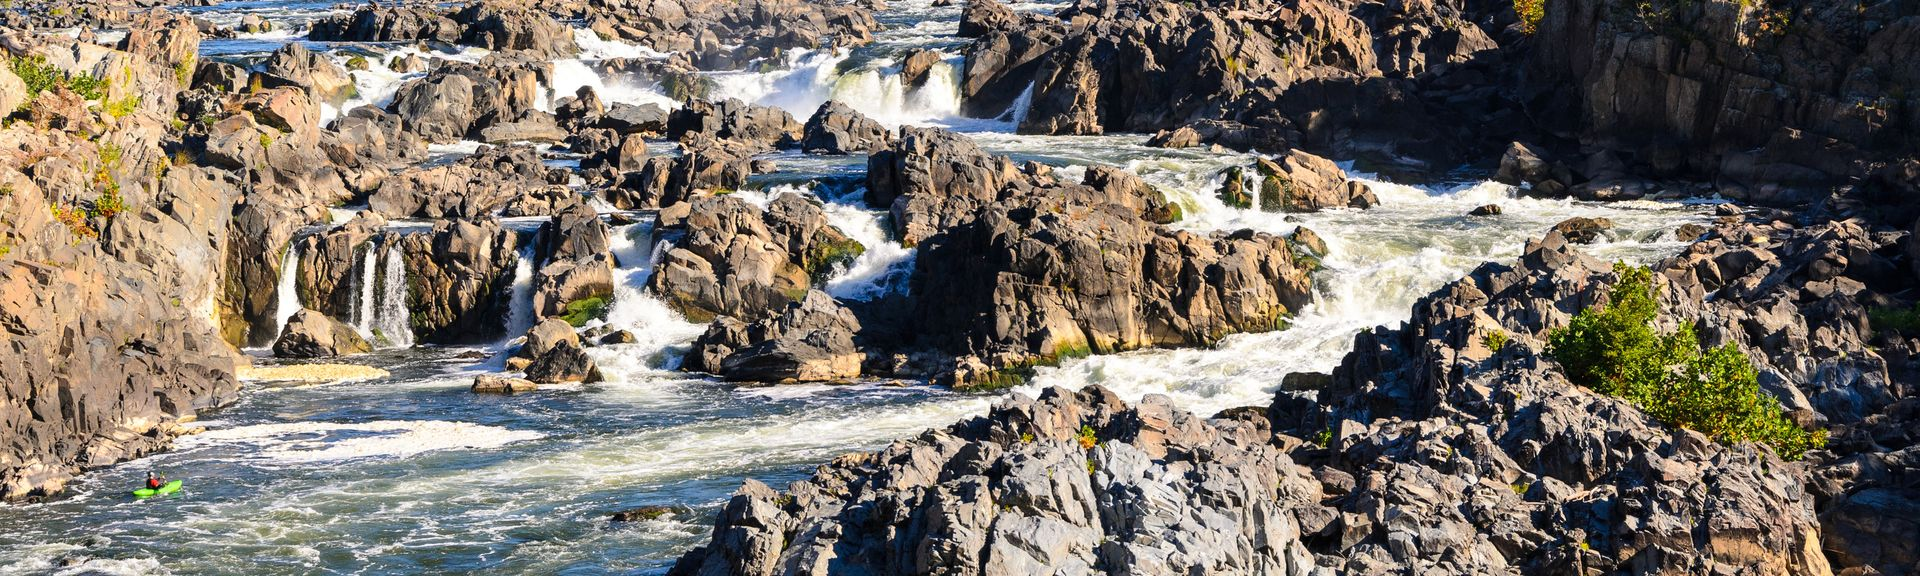 Great Falls, VA, USA